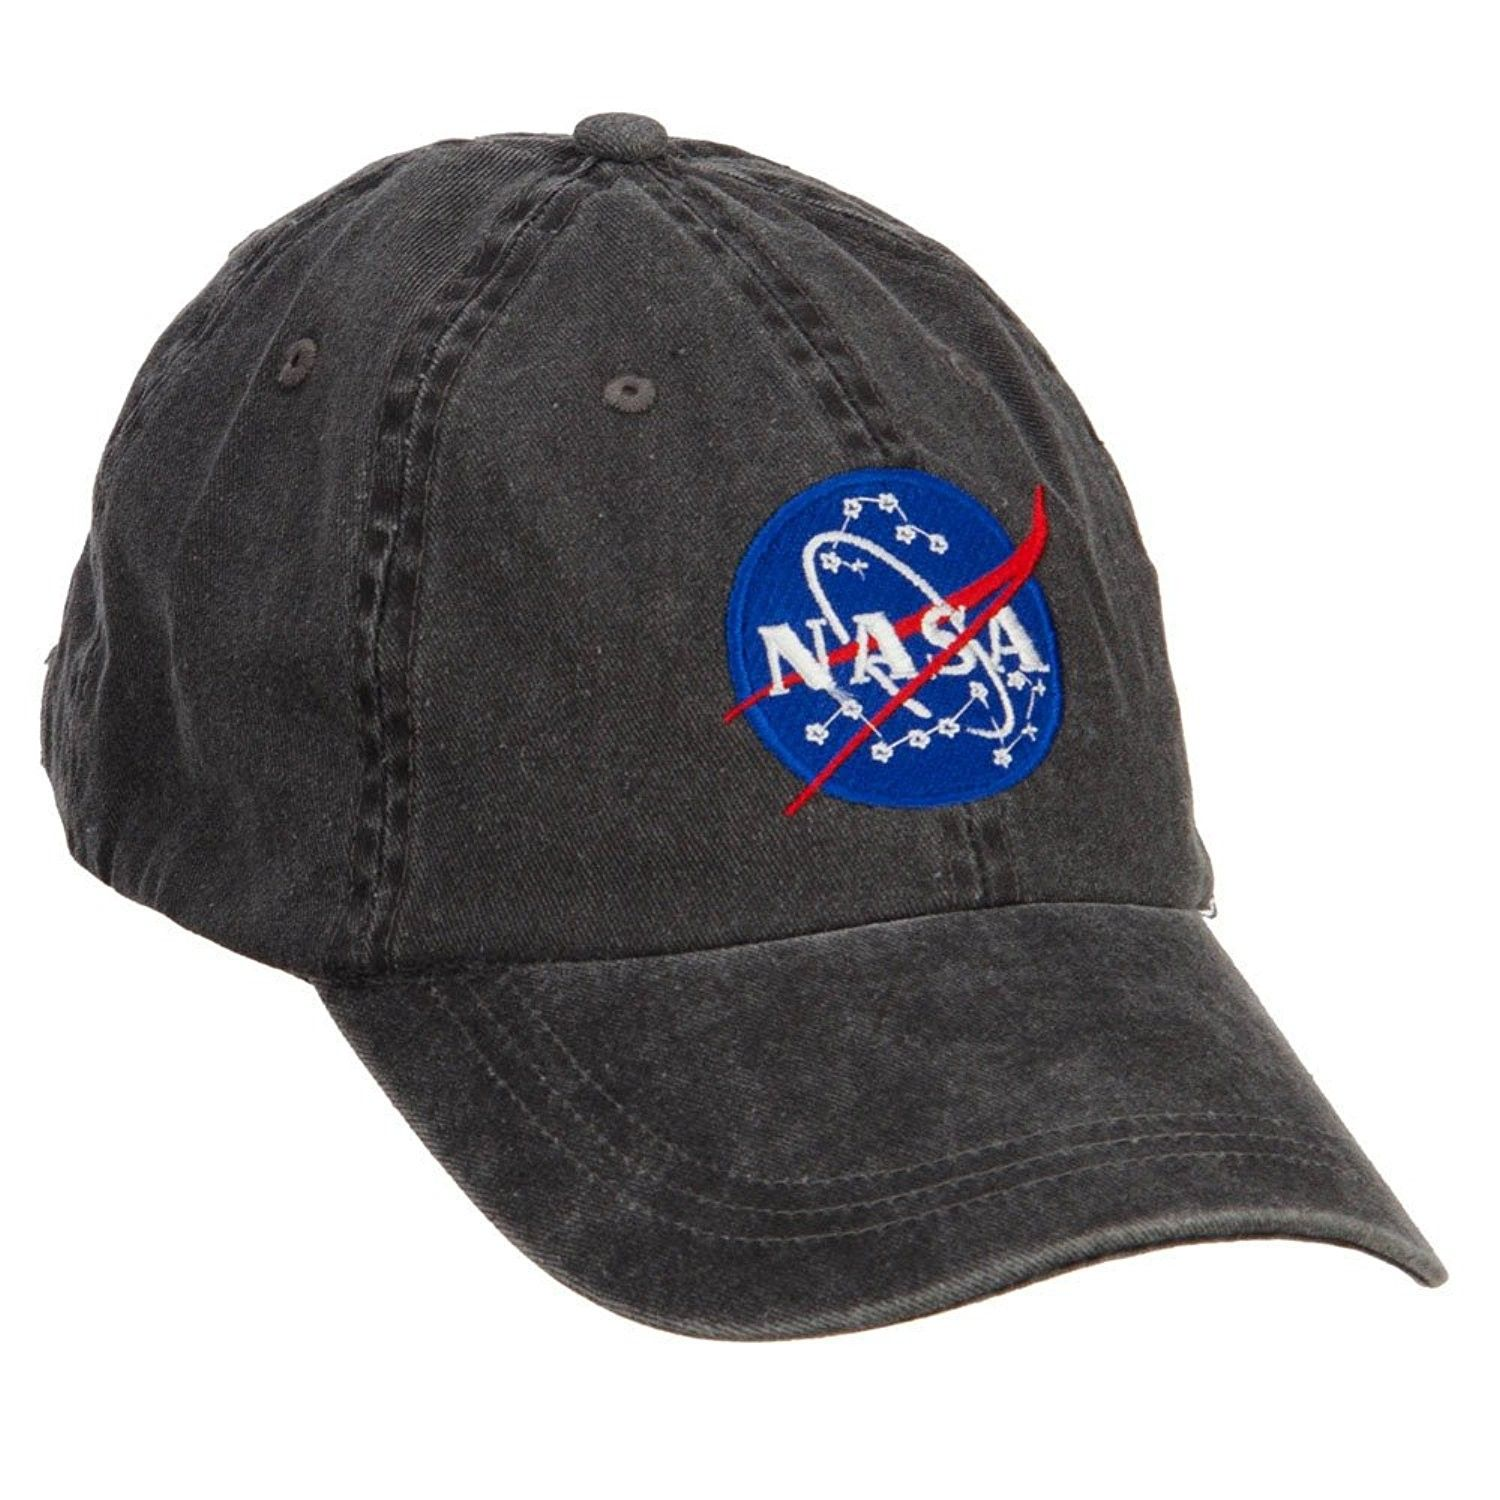 Men Women NASA Embroidered Baseball Trucker Hat Adjustable Snapback Cotton Cap